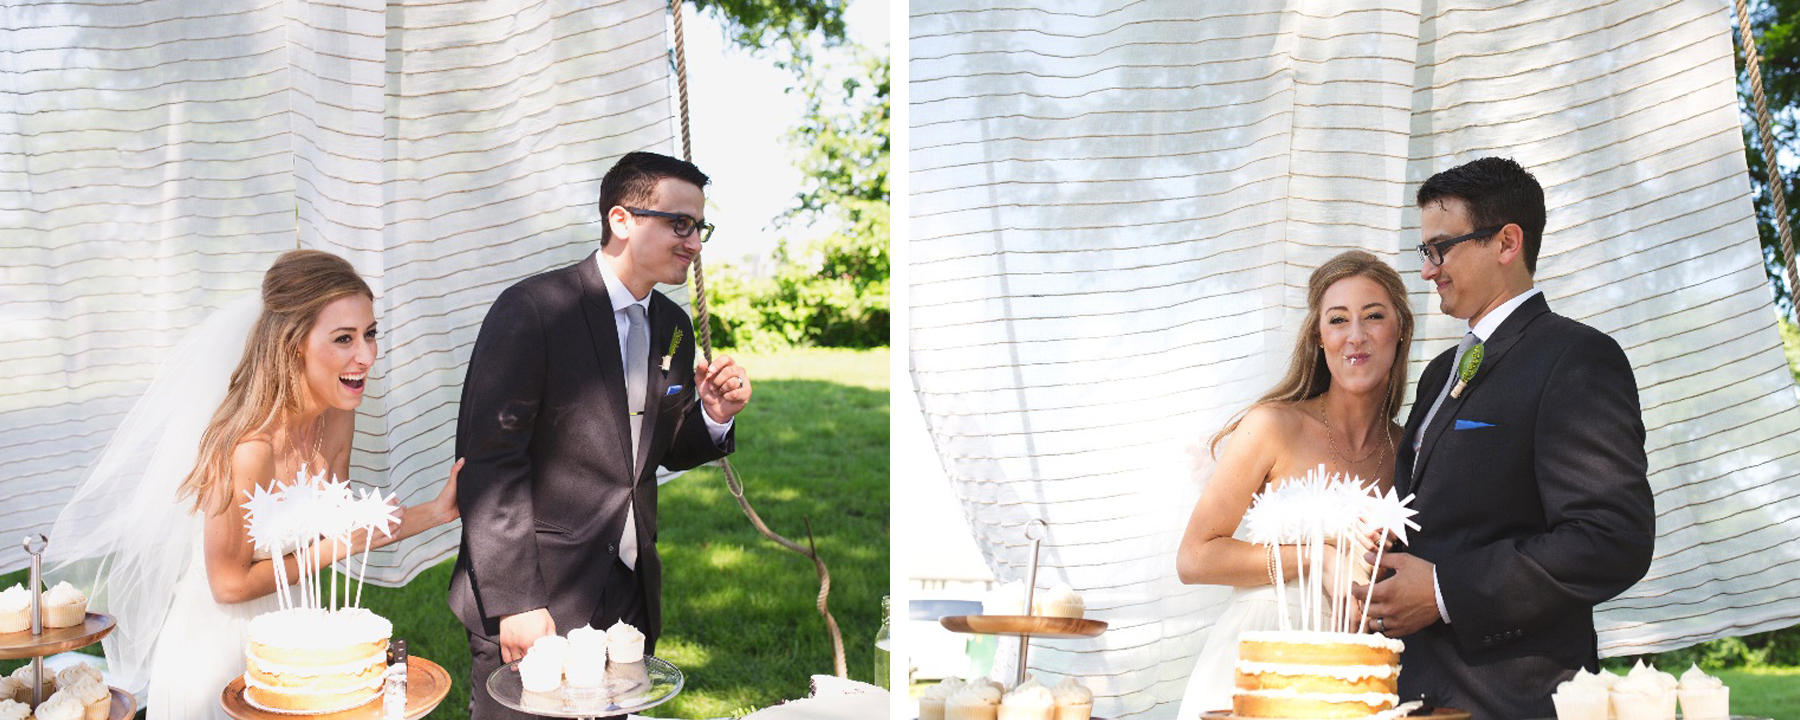 Photos from our wedding in June 2013